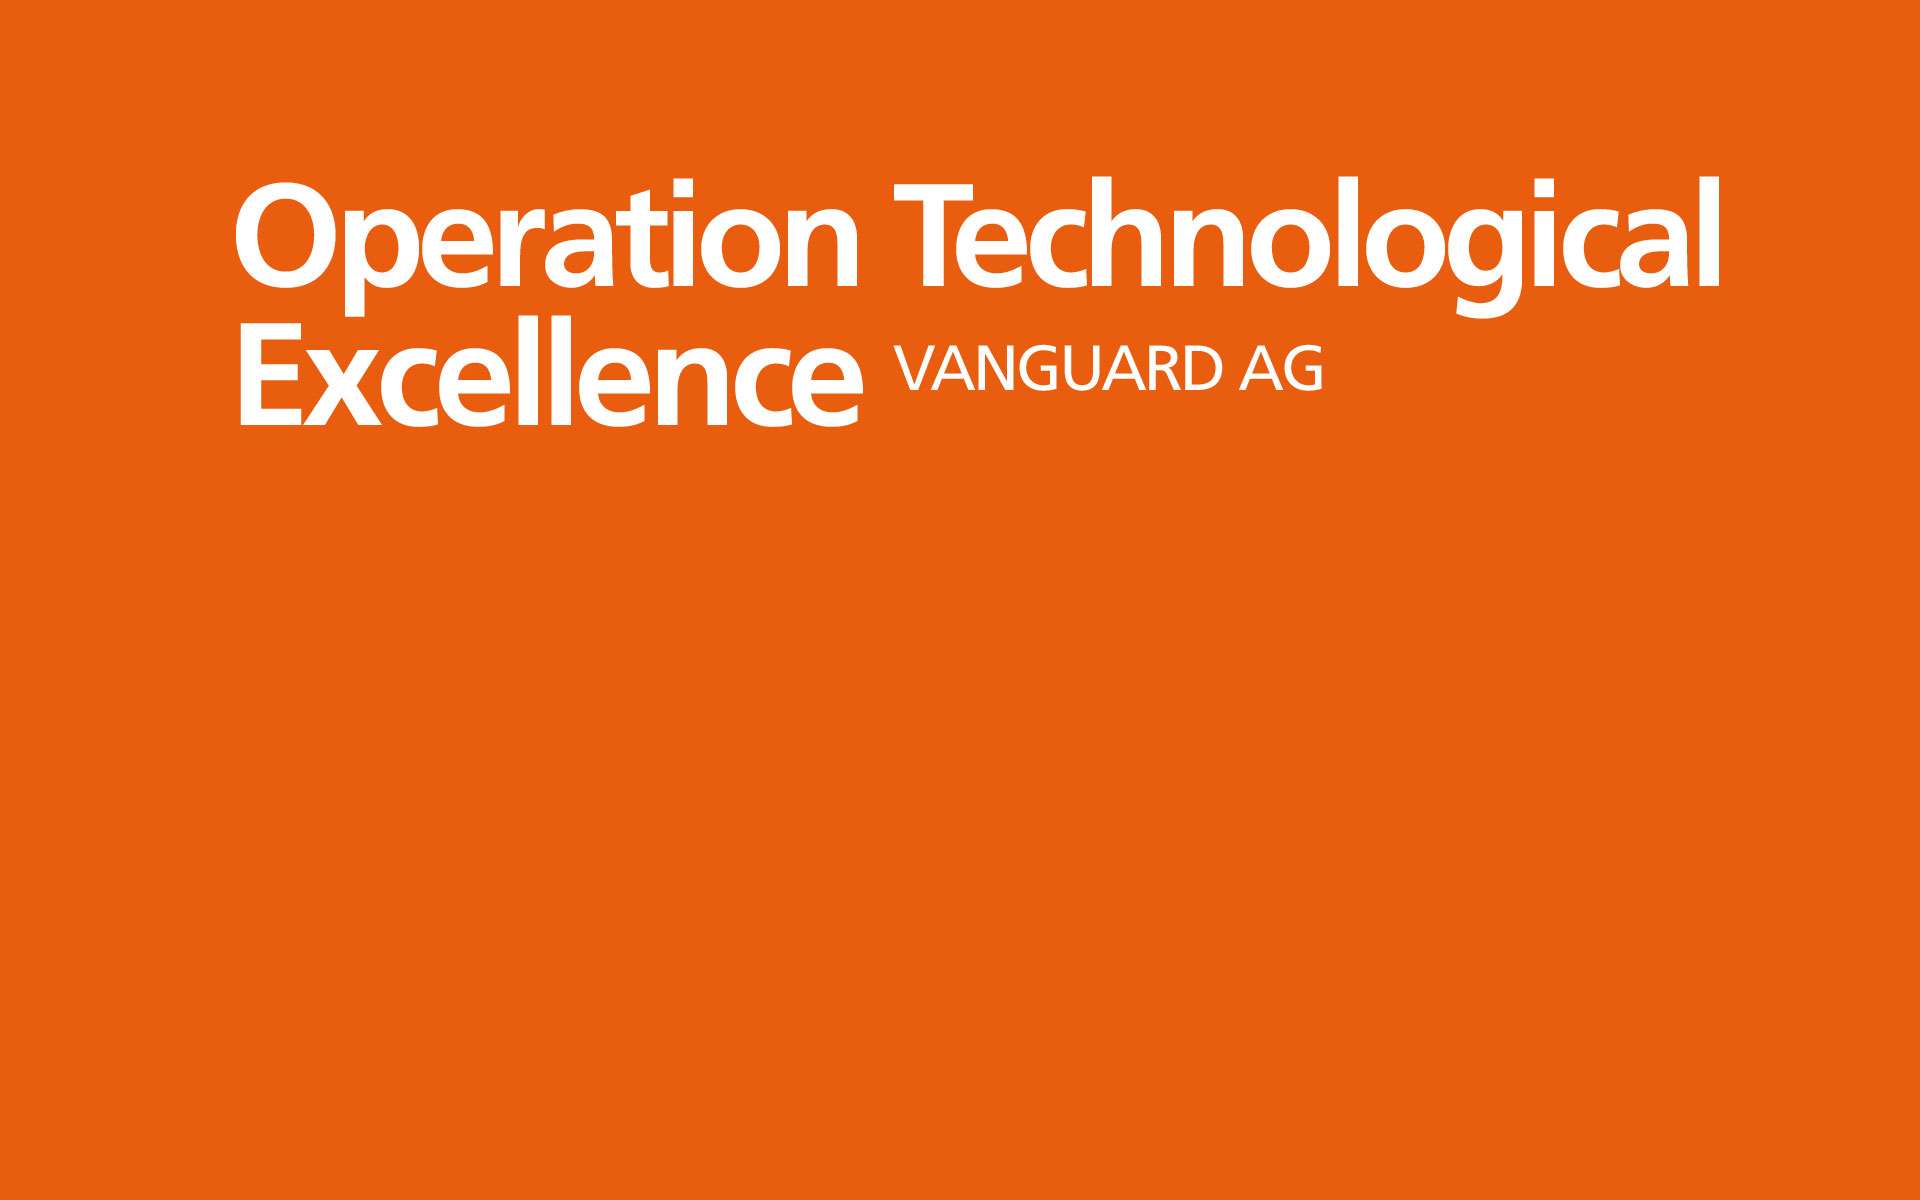 Vanguard – Operation Technological Excellence